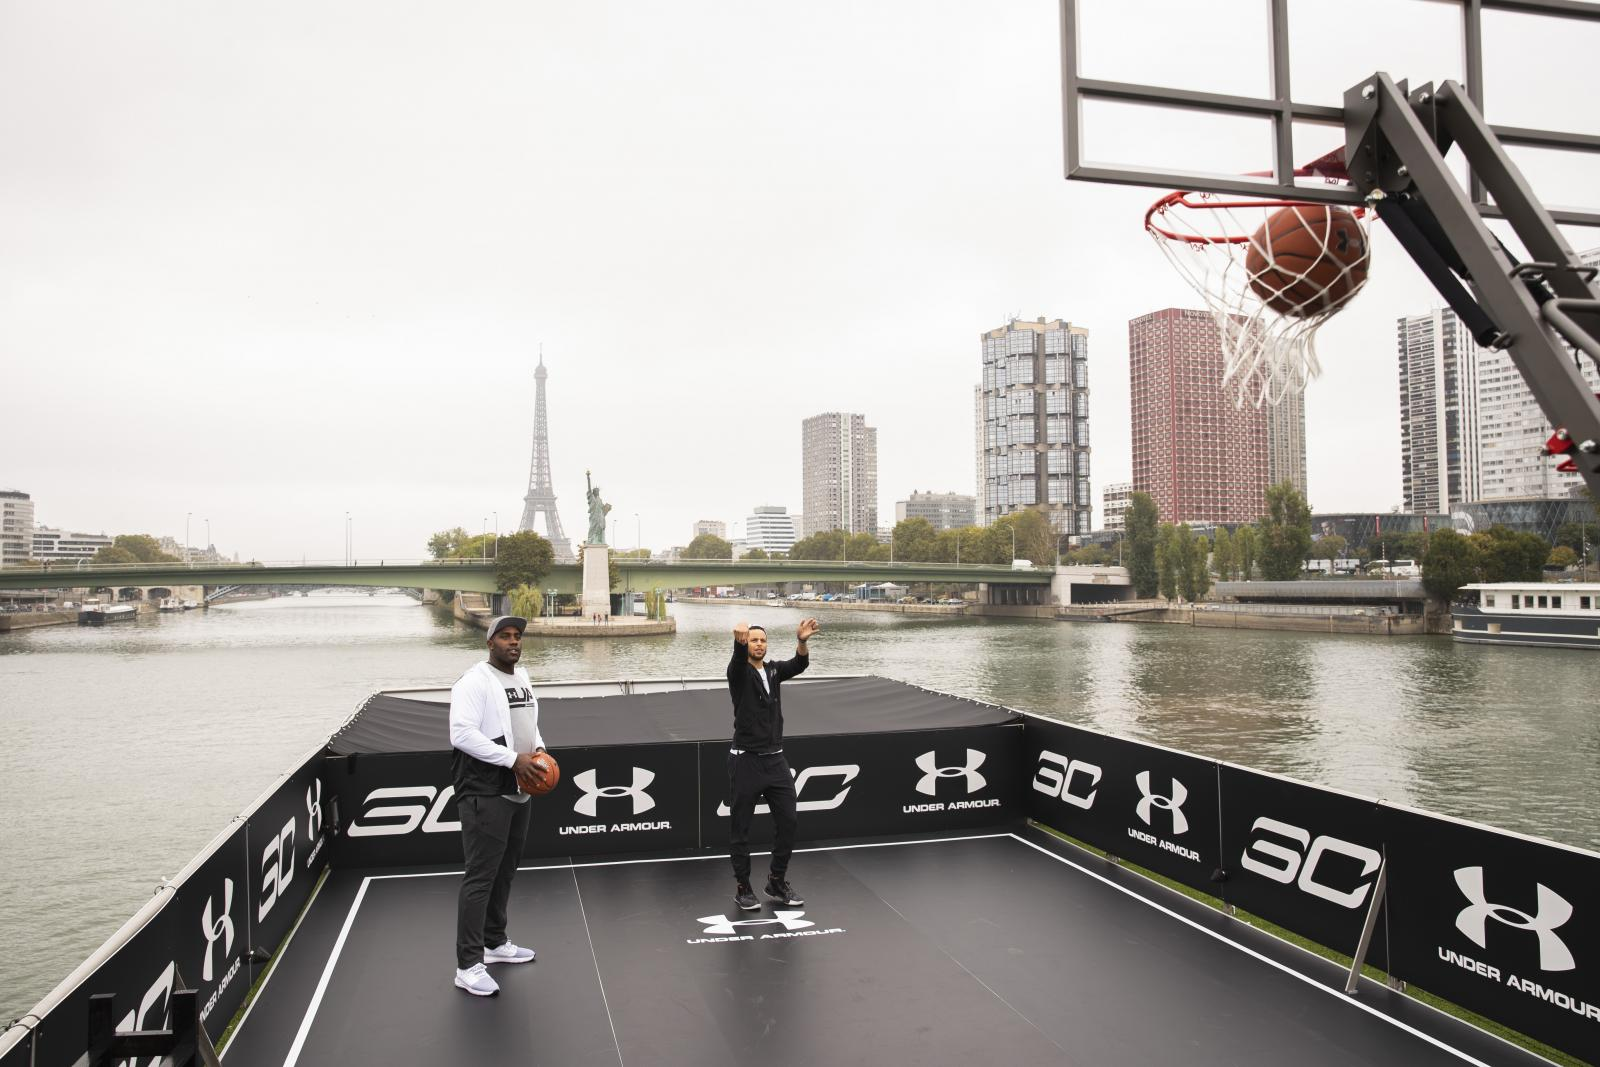 Stephen Curry takes on fellow Under Armour athlete and French judoka Teddy Riner while making a stop in Paris along his international tour